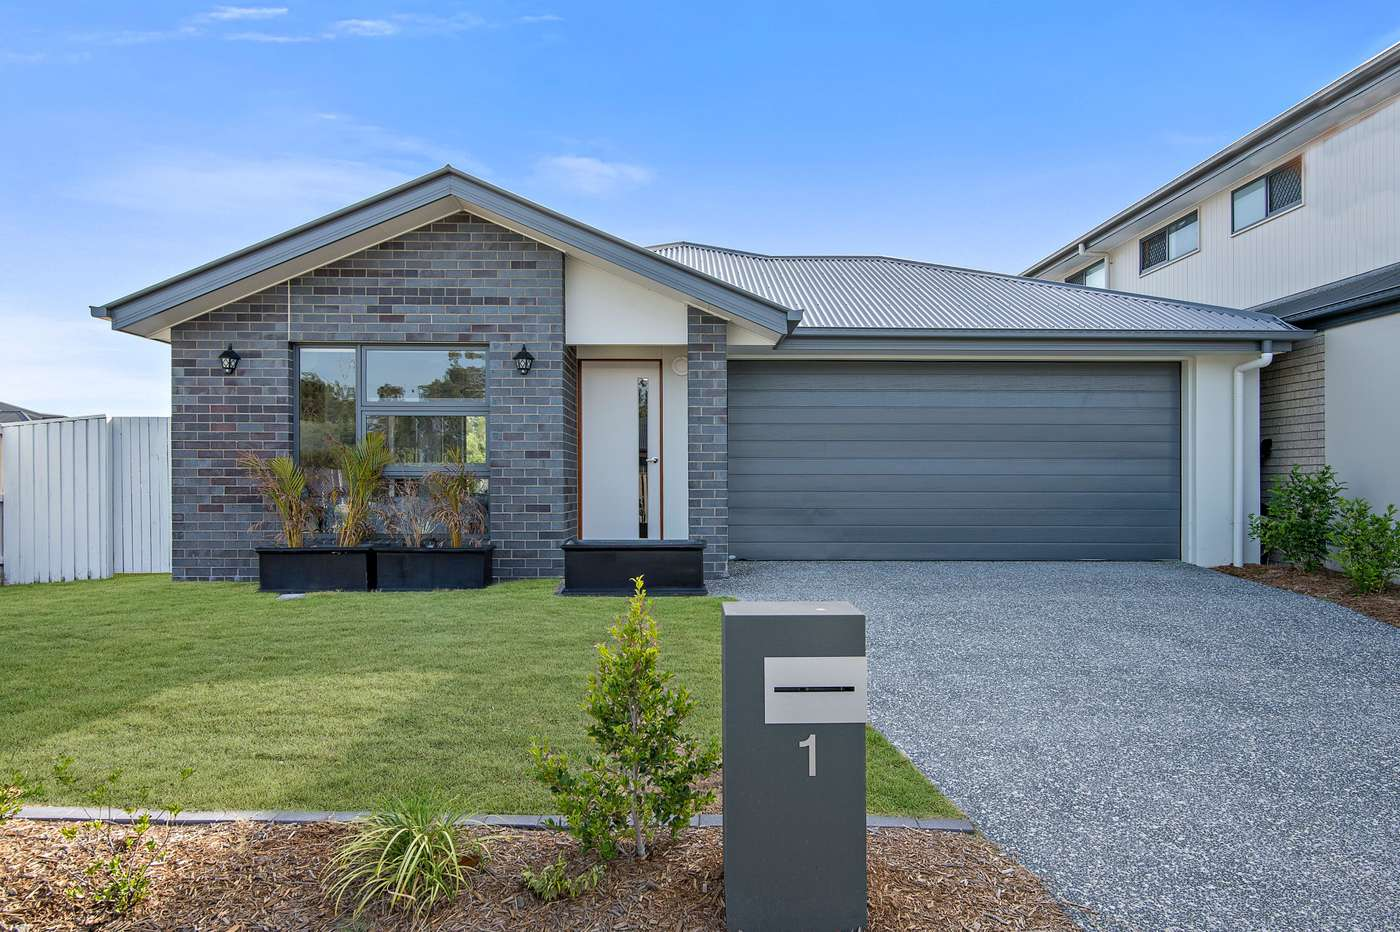 Main view of Homely house listing, 1 Bindarri Court, Mango Hill, QLD 4509